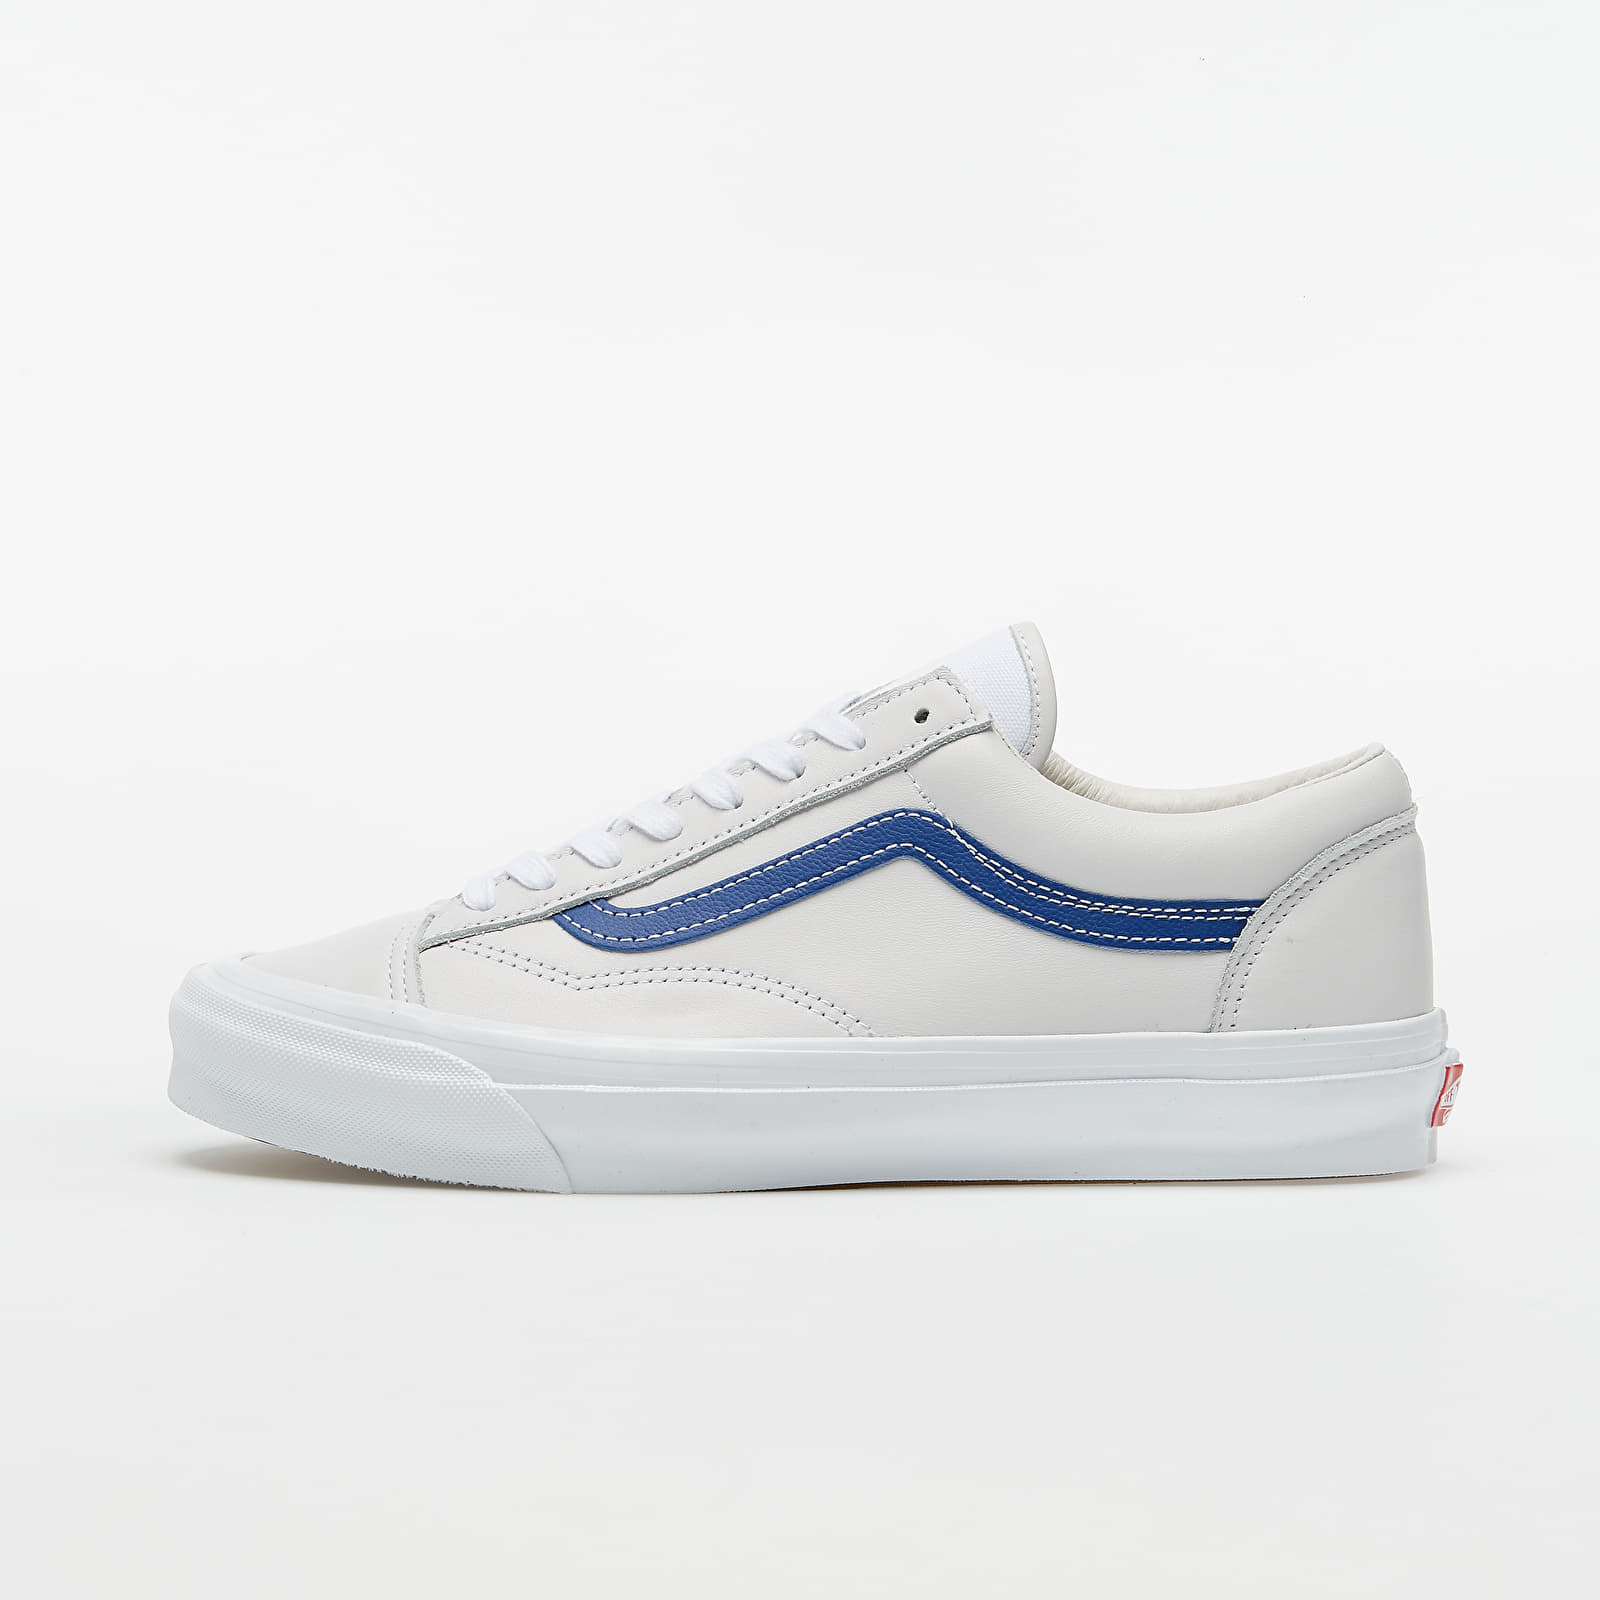 Chaussures et baskets homme Vans OG Style 36 LX (Leather) Blue/ True White